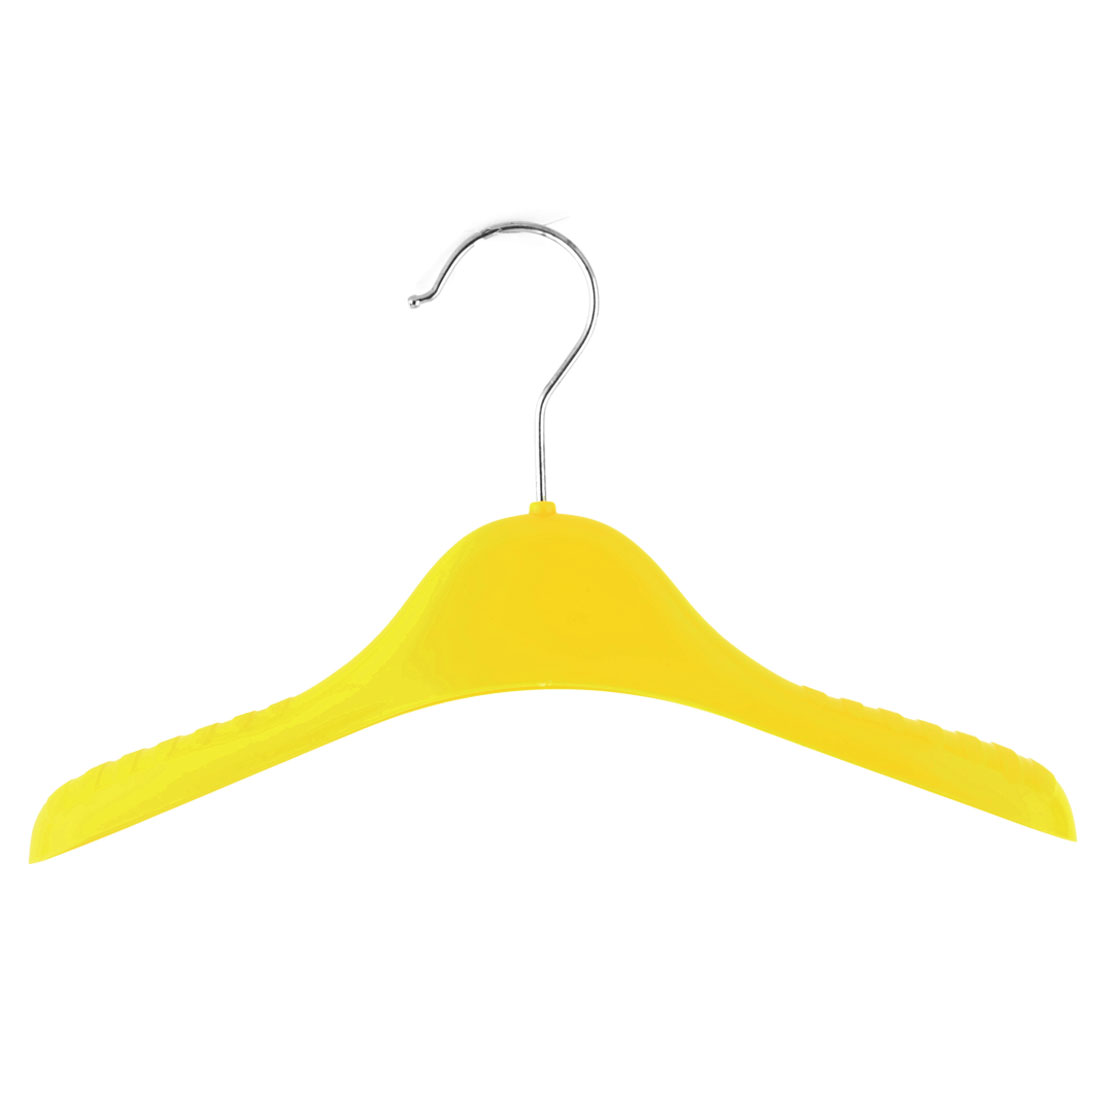 Household Nonslip Clothes Skirts Pants Trousers Towel Hangers Hooks Holder Yellow